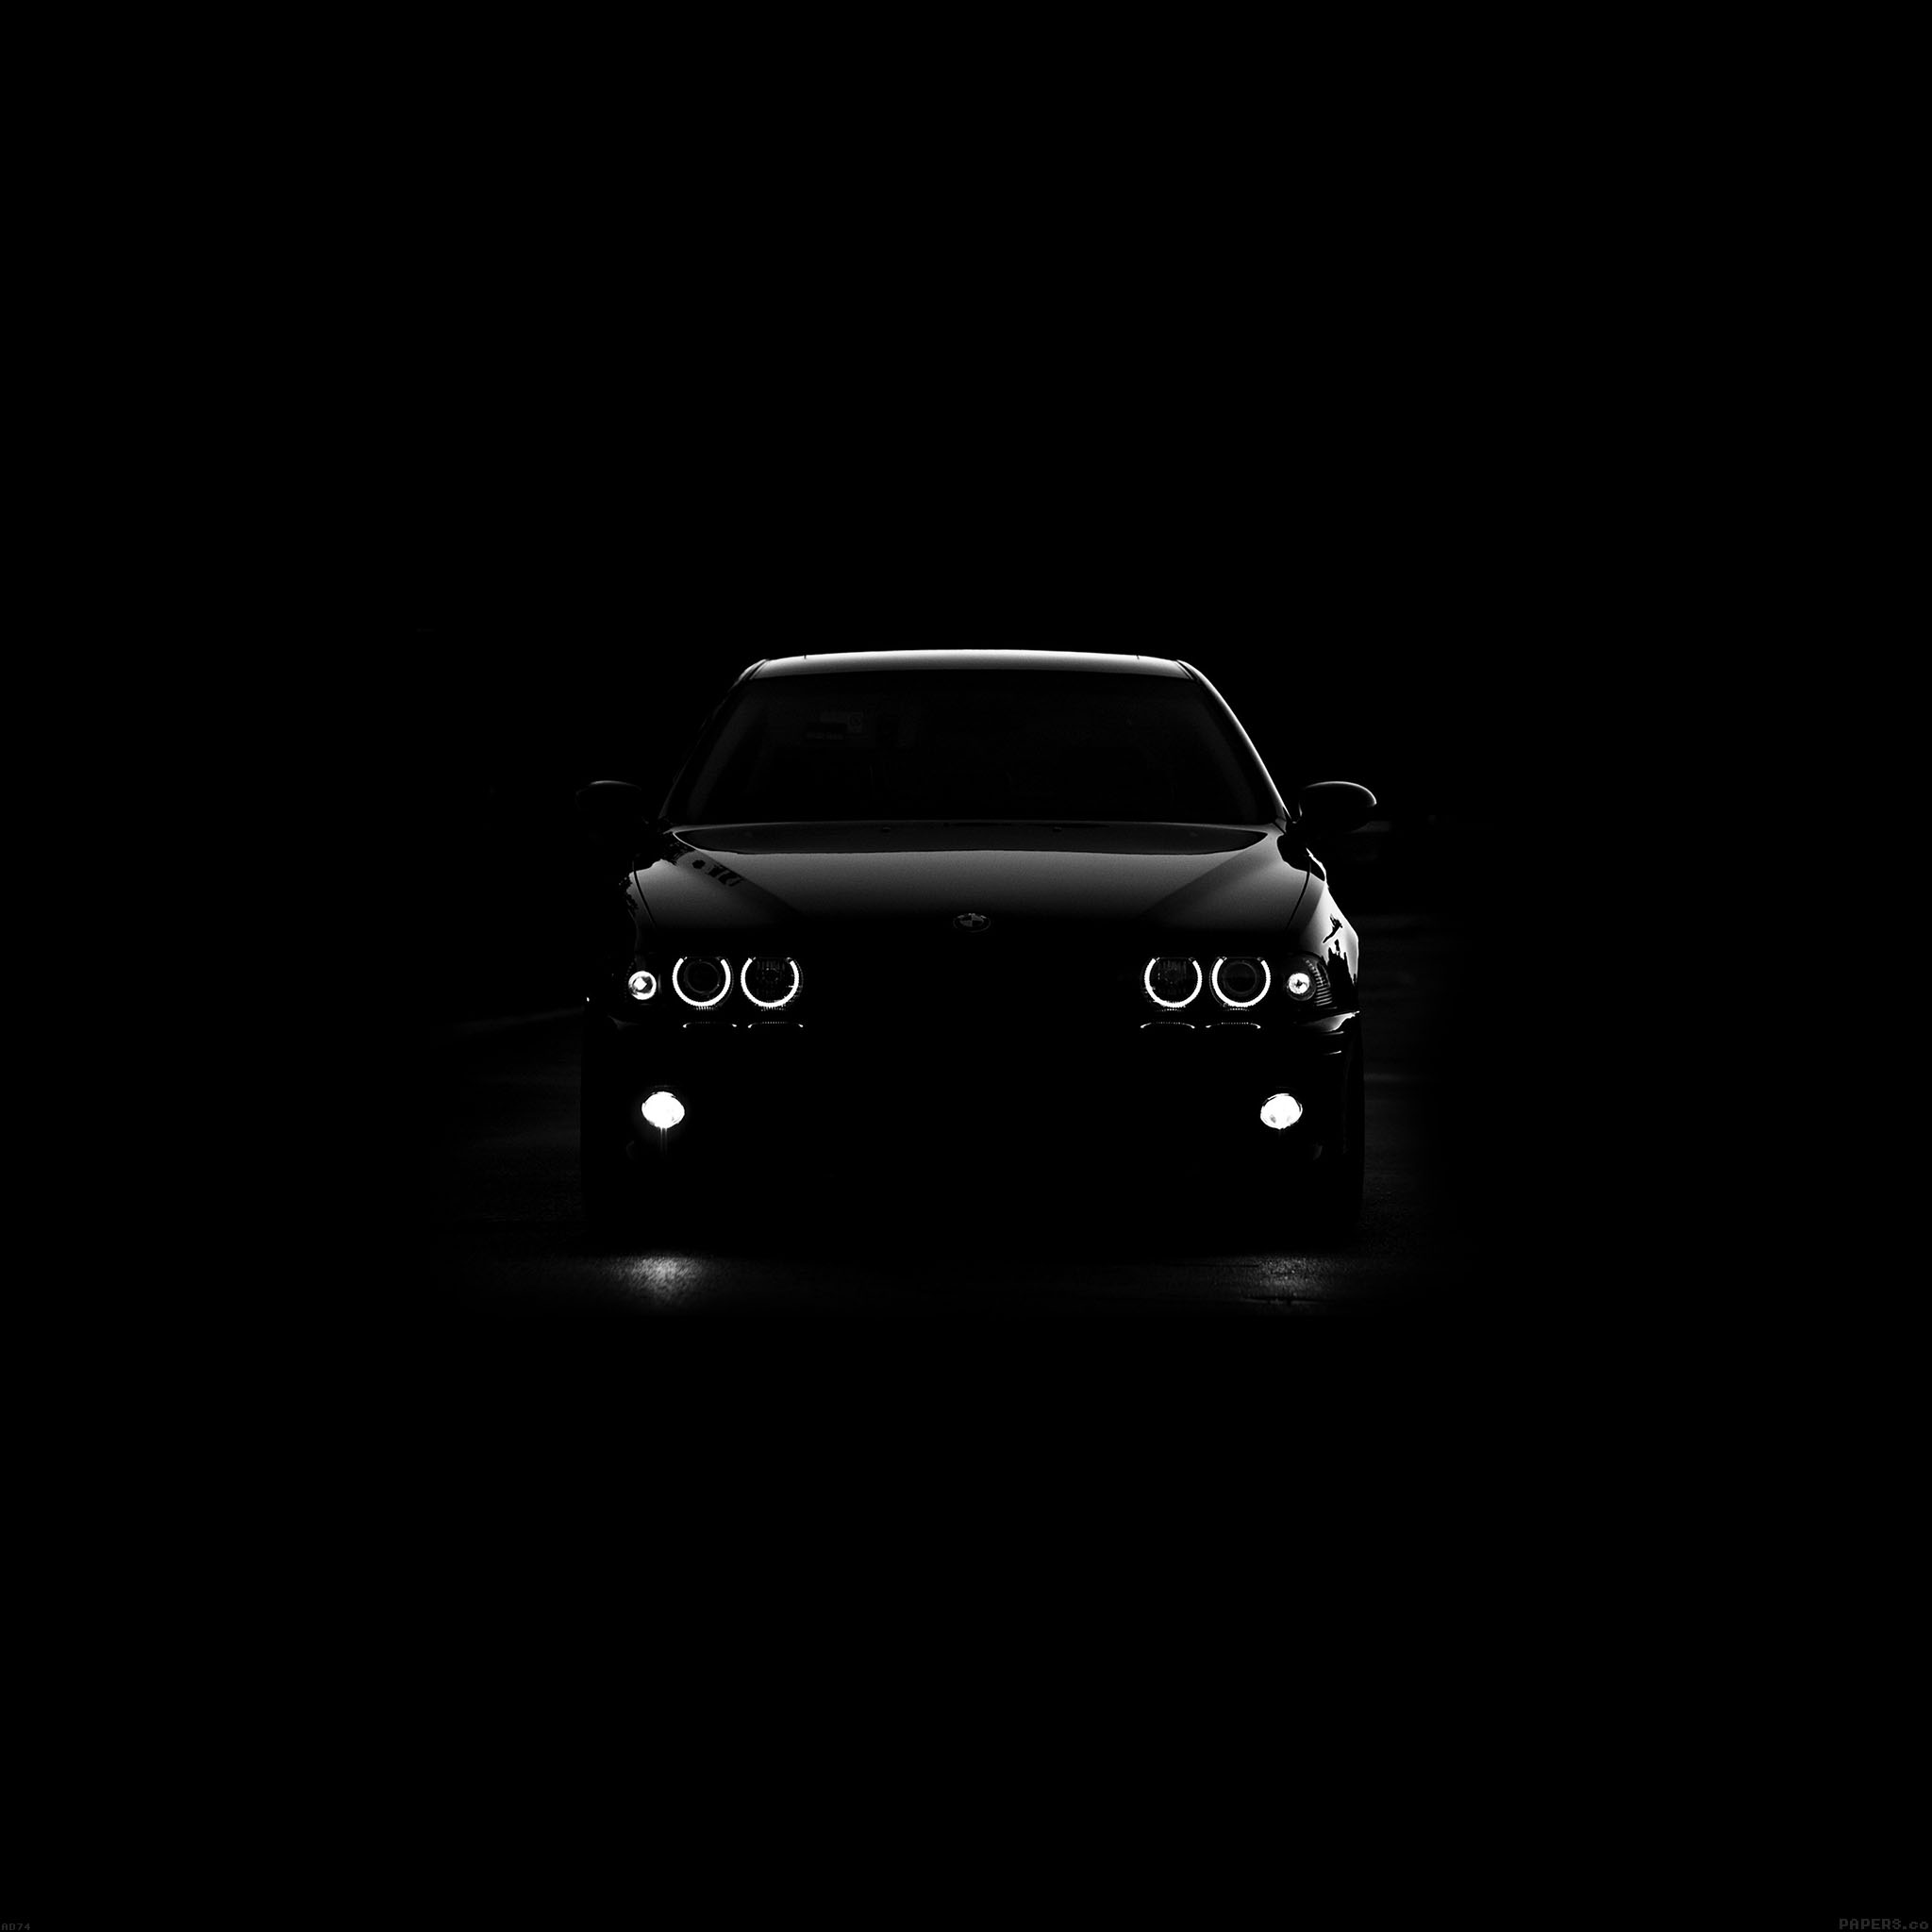 Ad74-bmw-car-black-light - Parallax HD IPhone